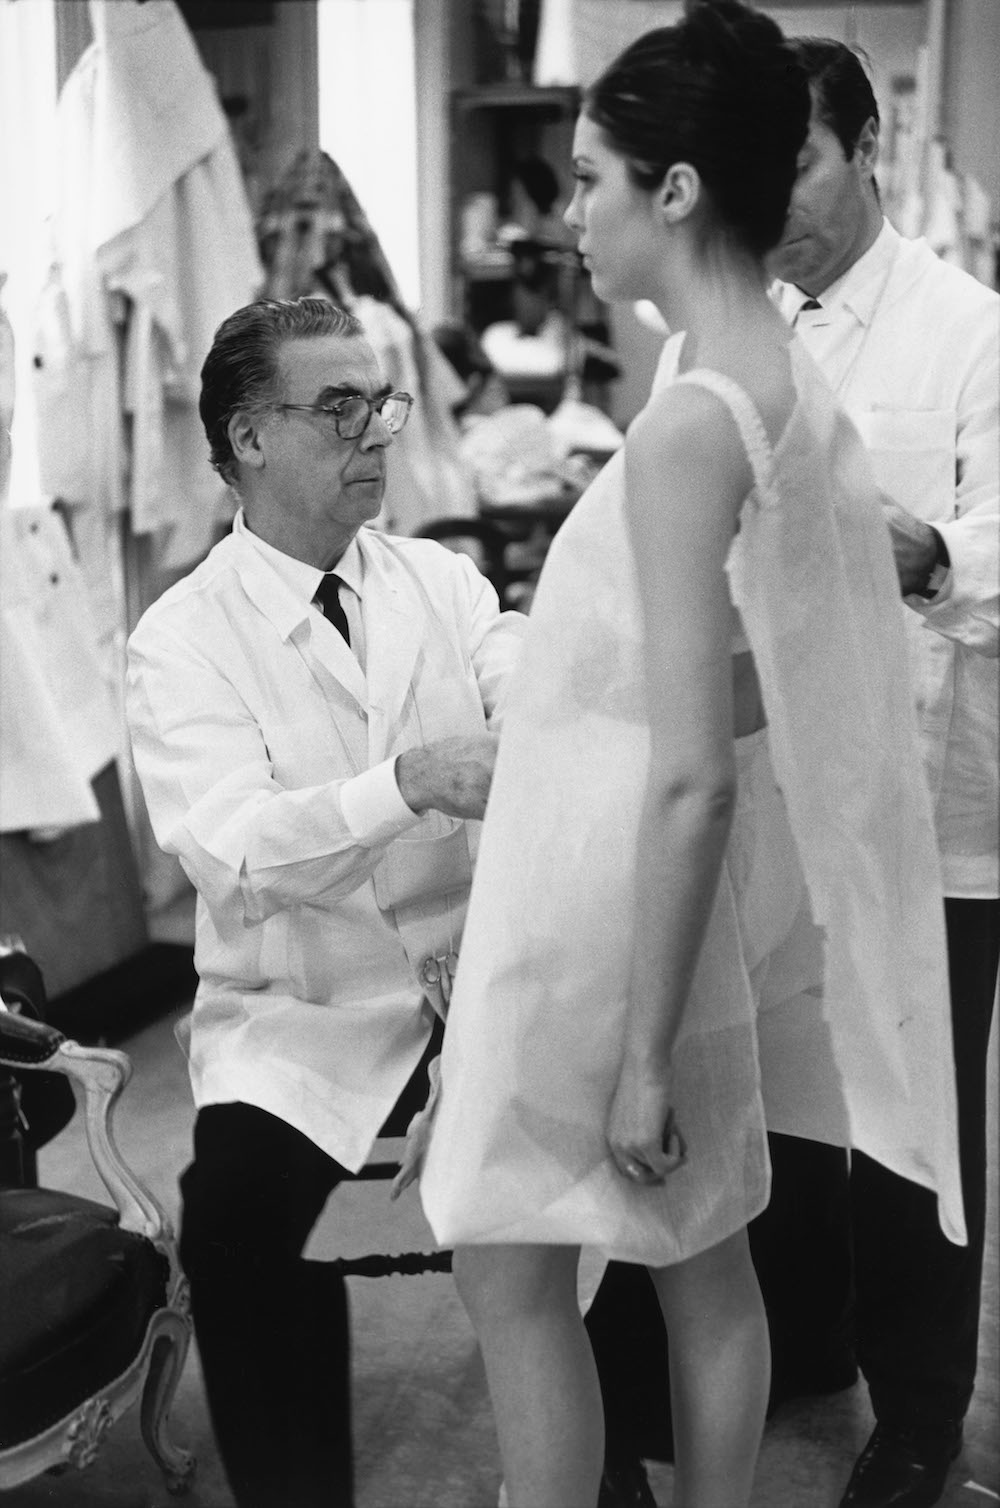 Cristóbal Balenciaga at work, Paris, 1968. Photograph Henri Cartier-Bresson © Henri Cartier-Bresson, Magnum Photos